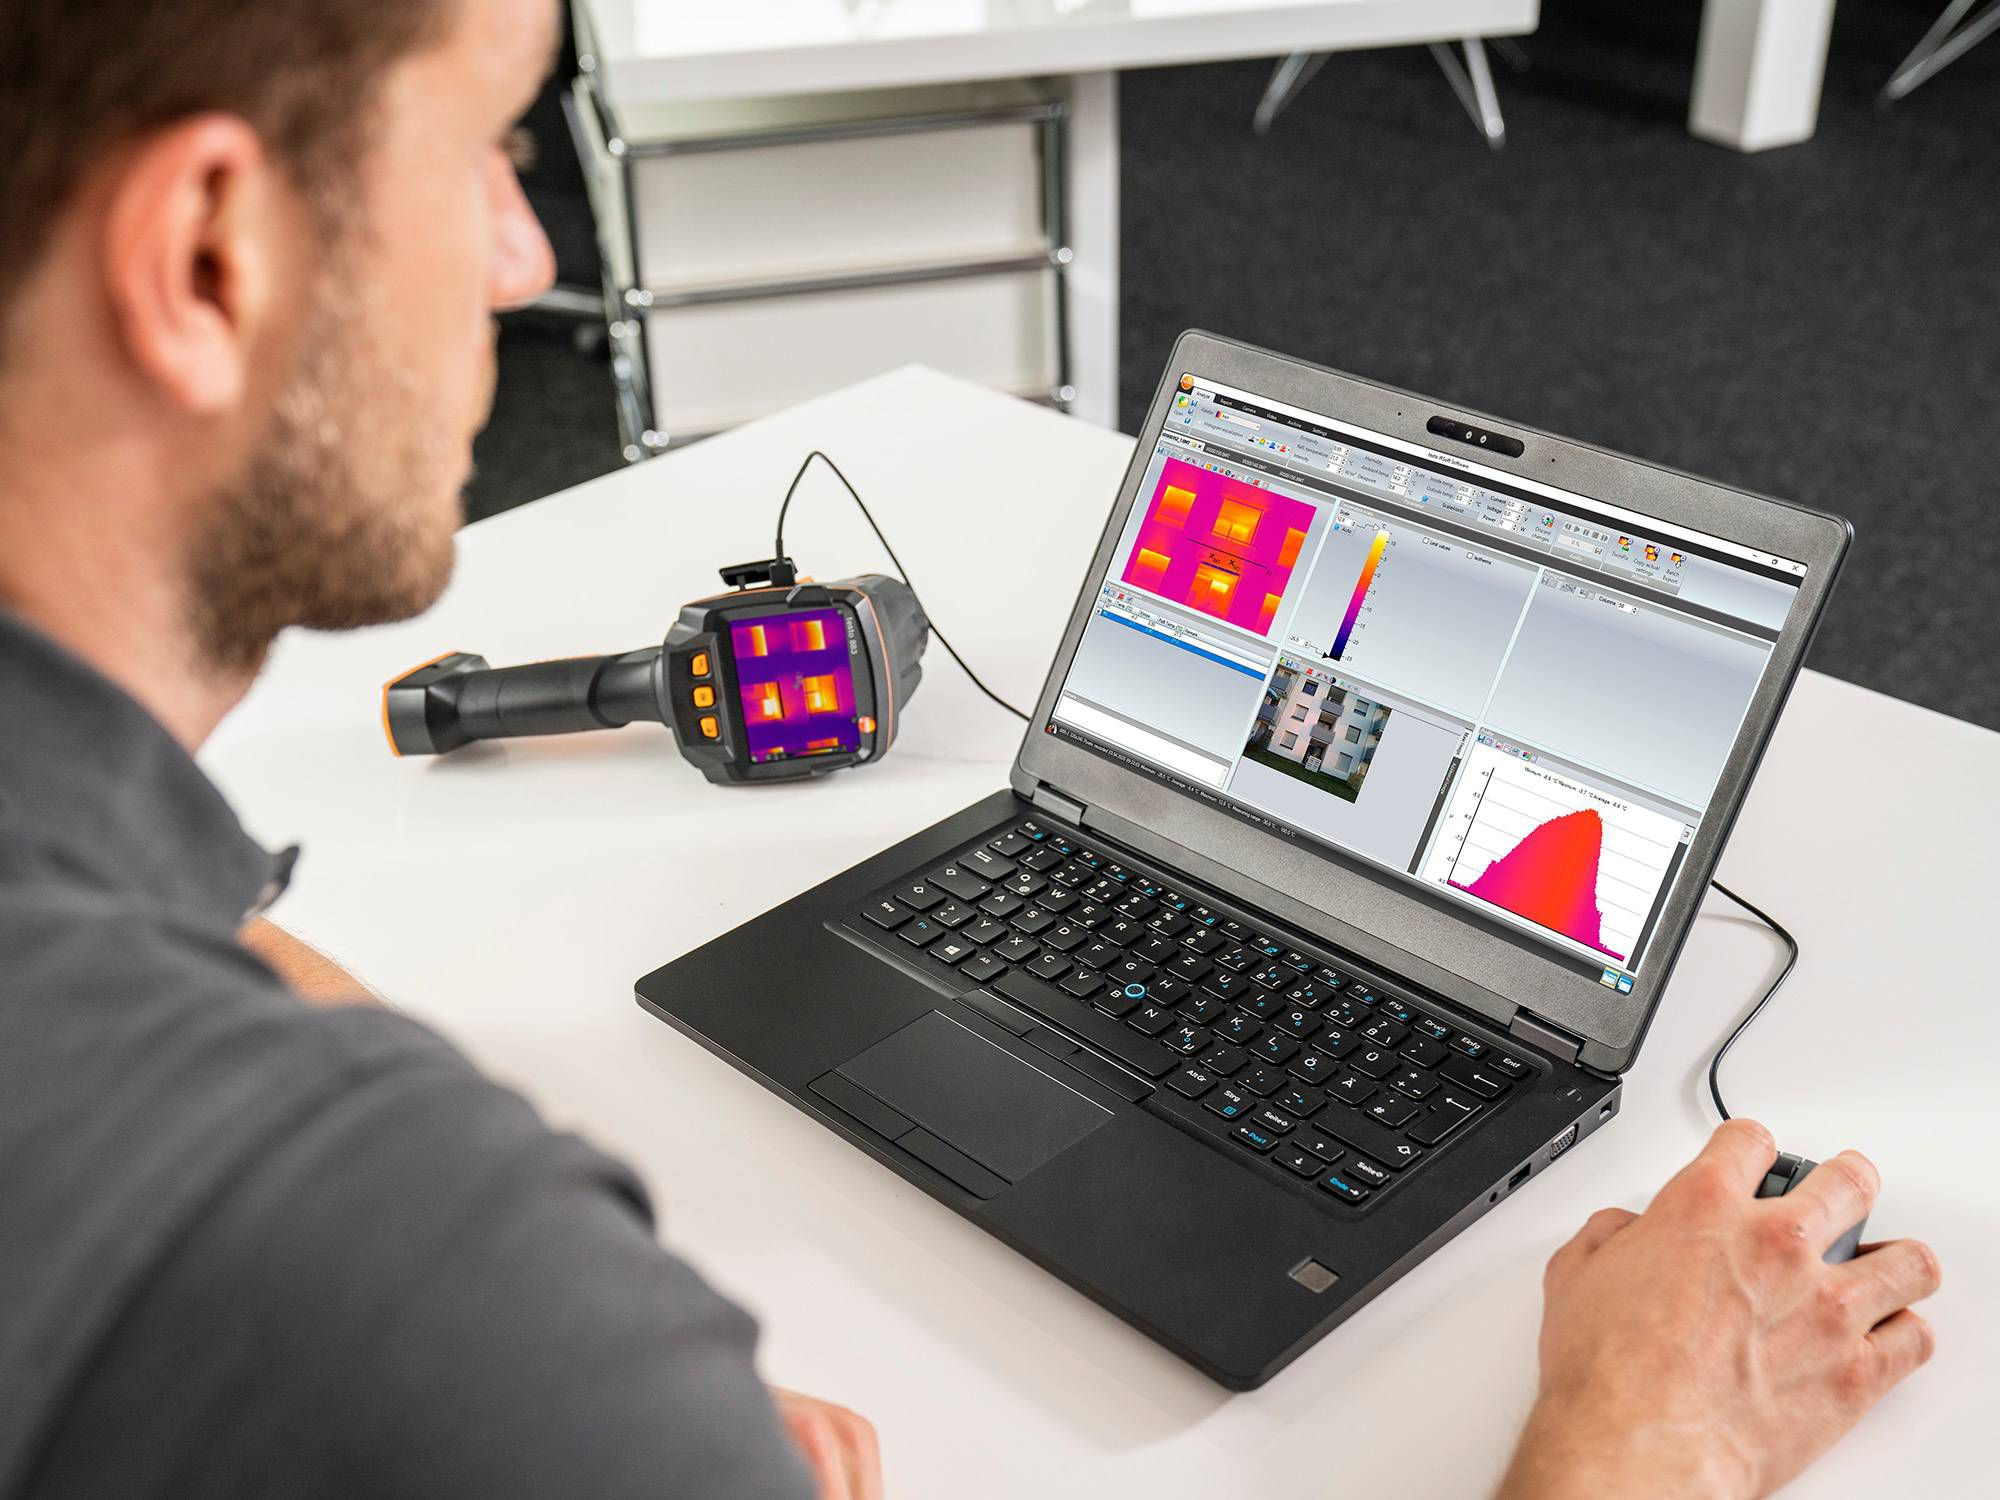 Analysis software for thermography